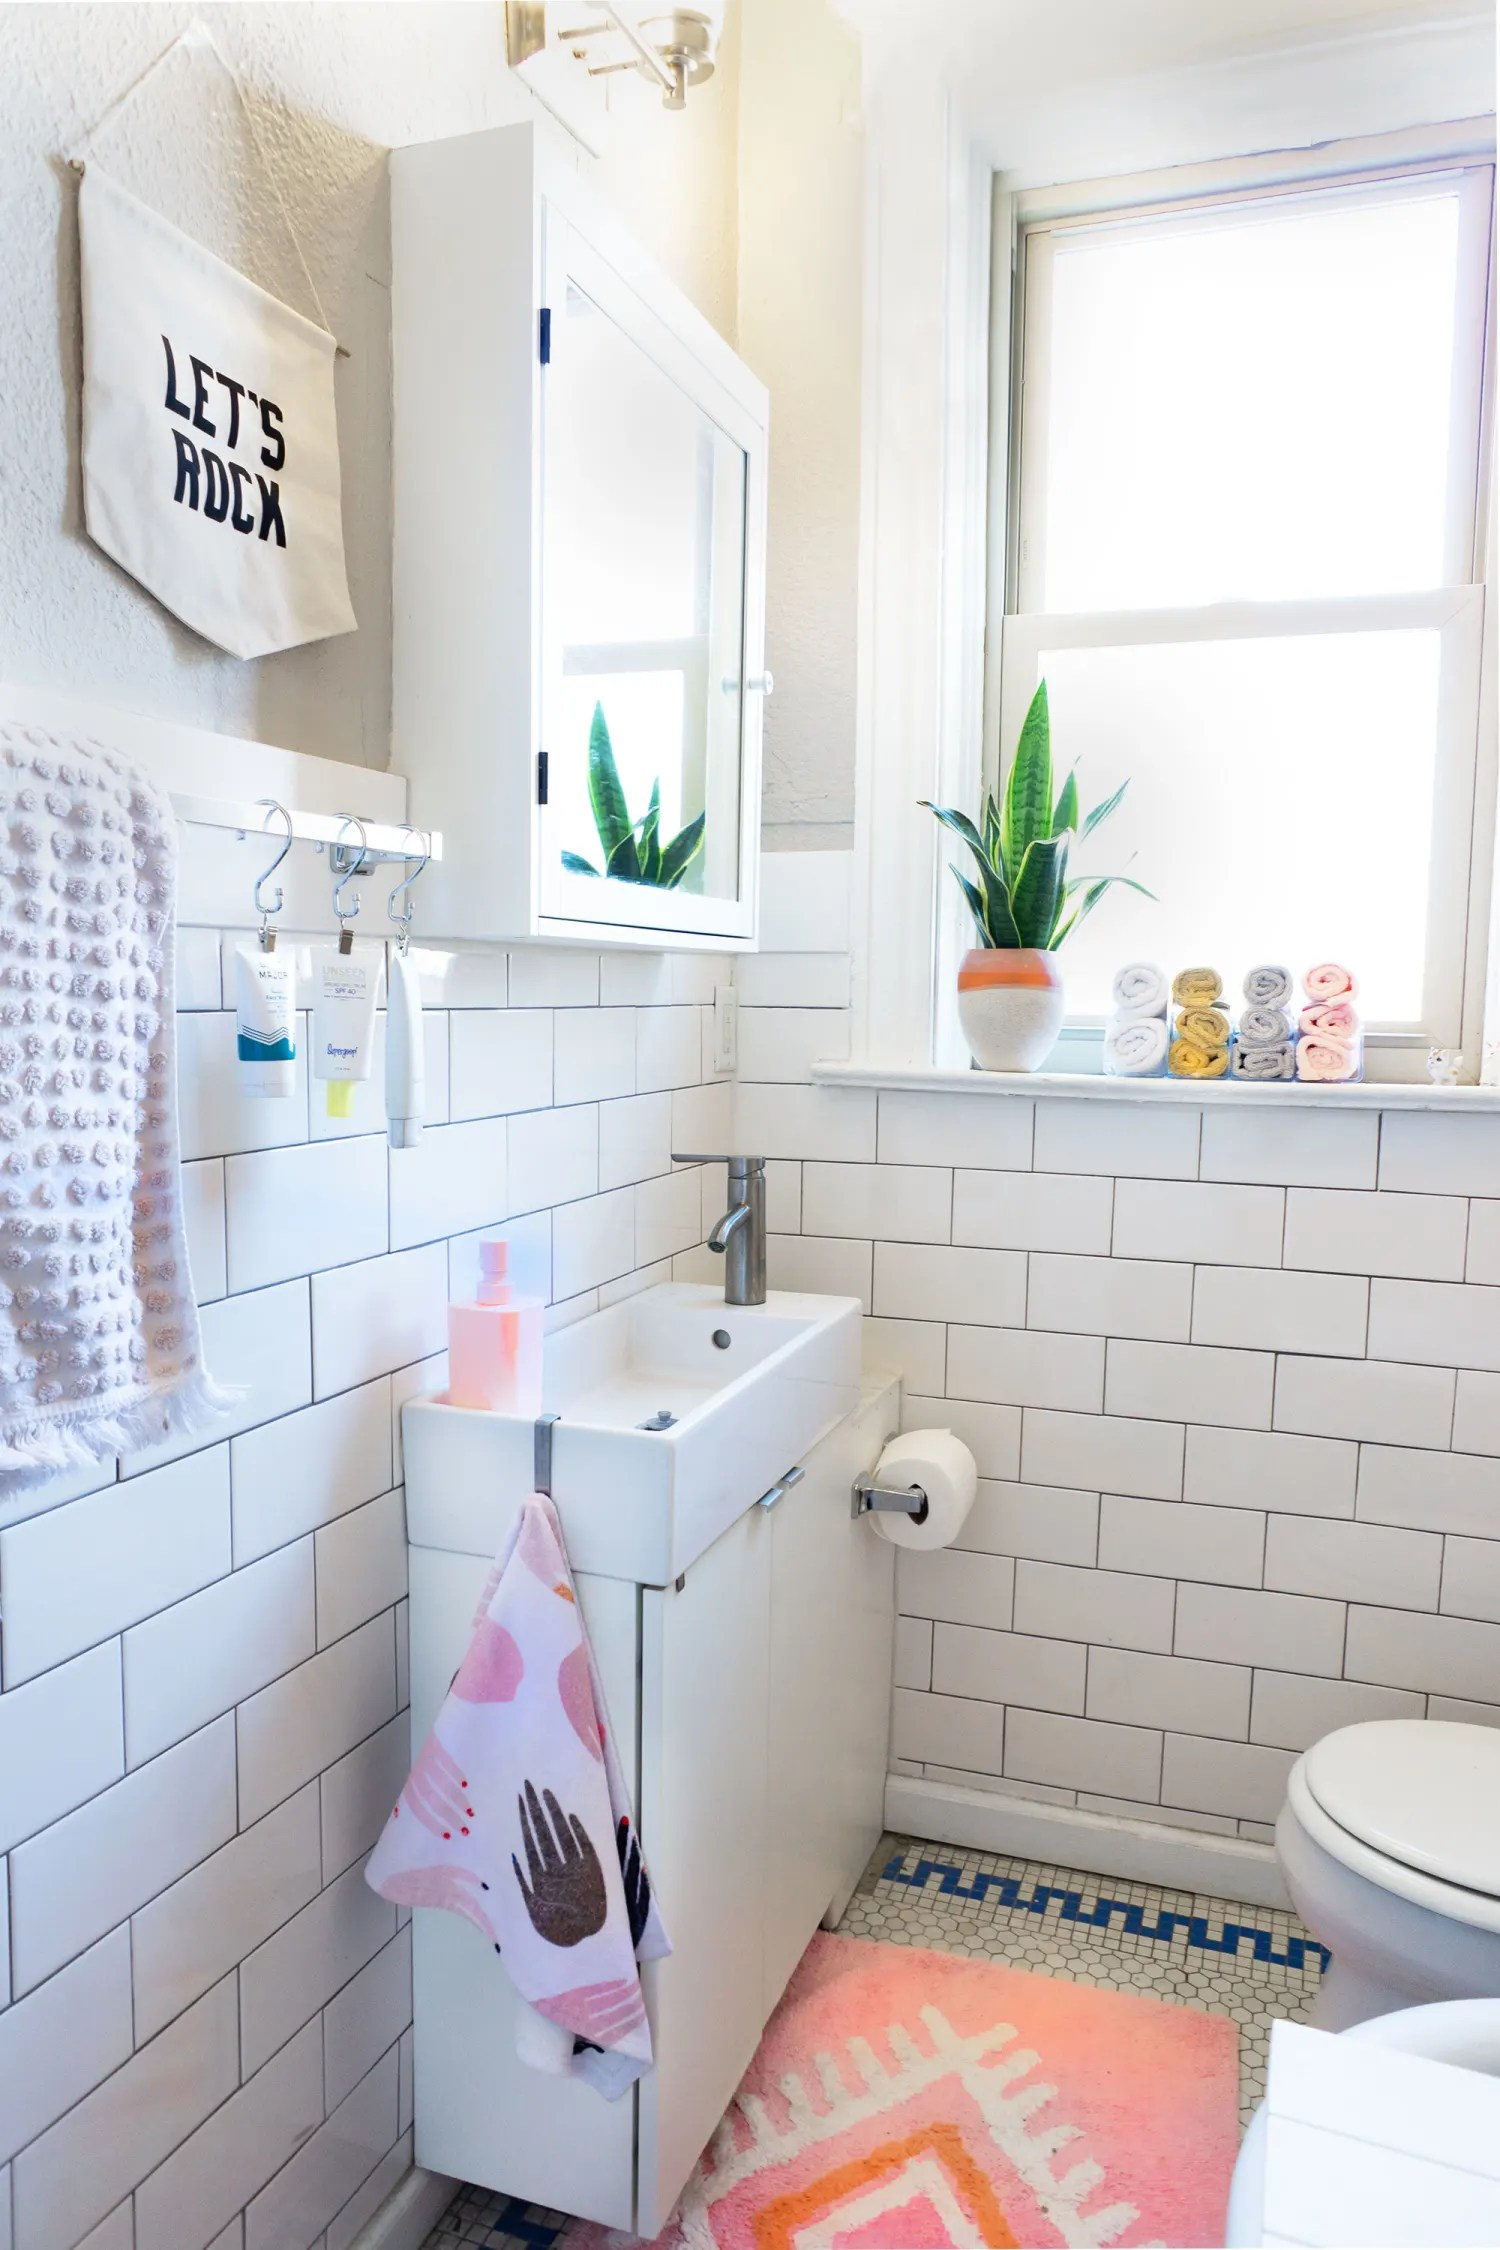 Toilet Paper Storage Ideas for a Small Bathroom ... on Small Apartment Bathroom Storage Ideas  id=75204